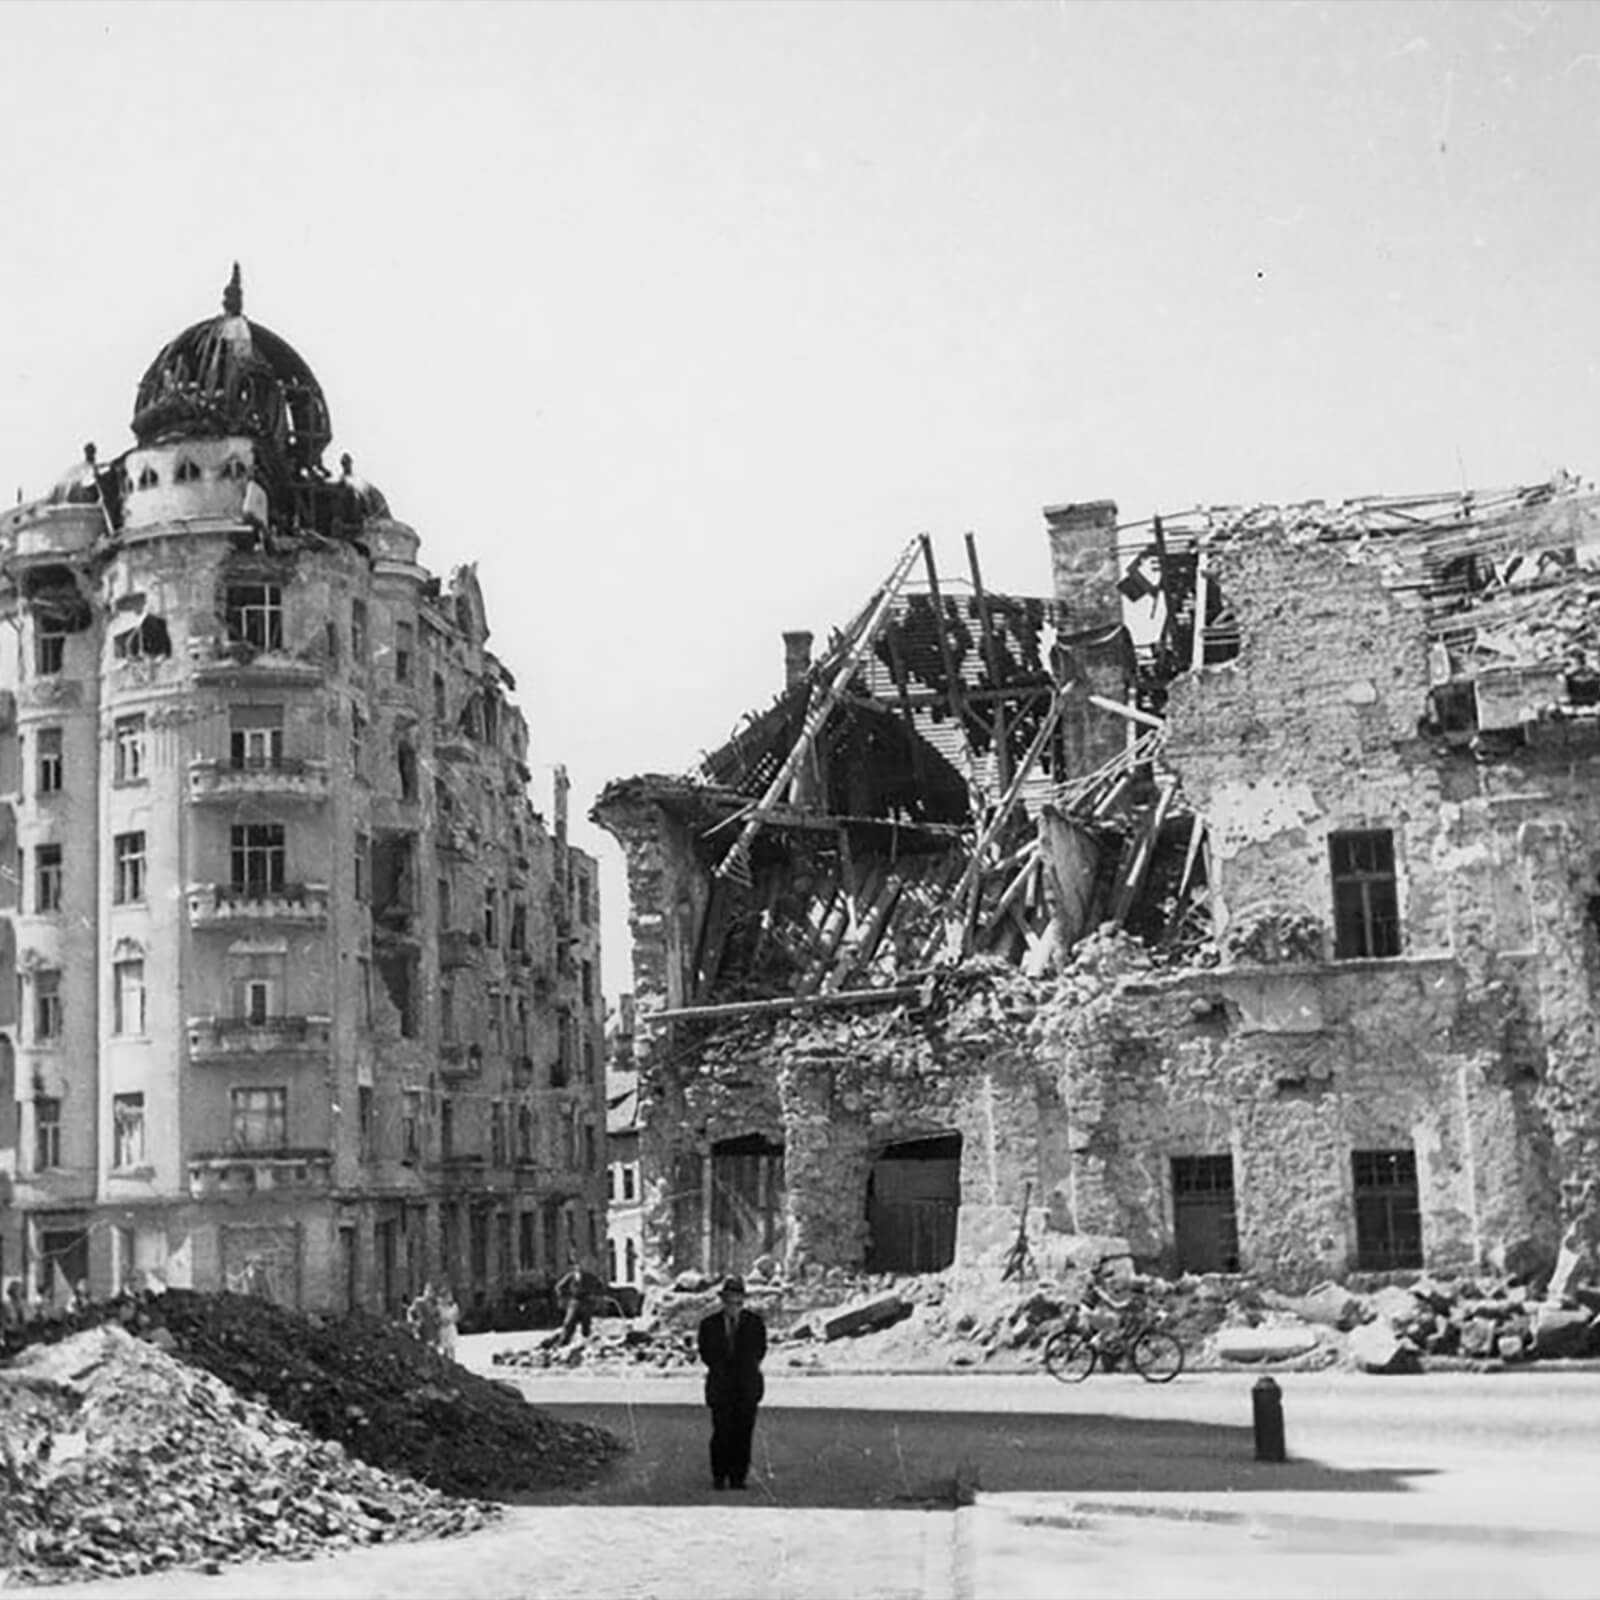 Bombed Budapest buildings in 1944